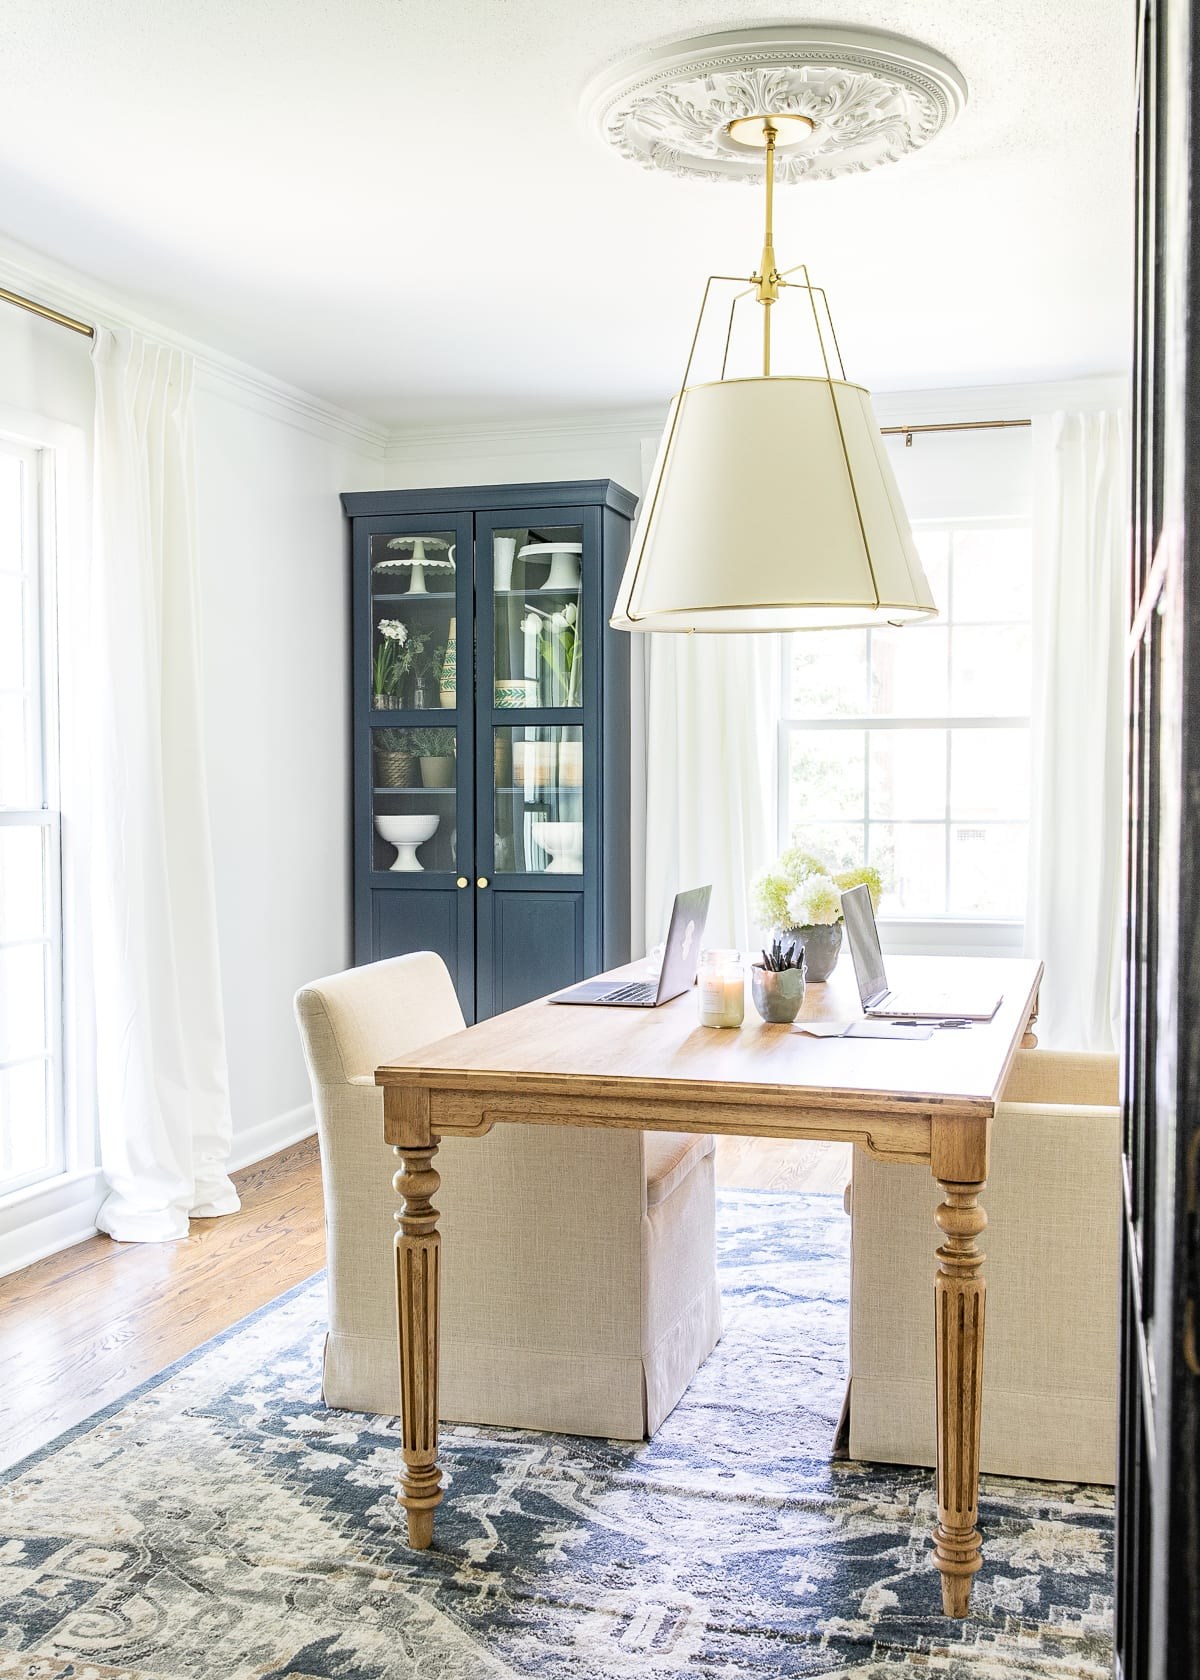 white and navy home office with work table and storage cabinets   Benjamin Moore Hale Navy and Chantilly Lace